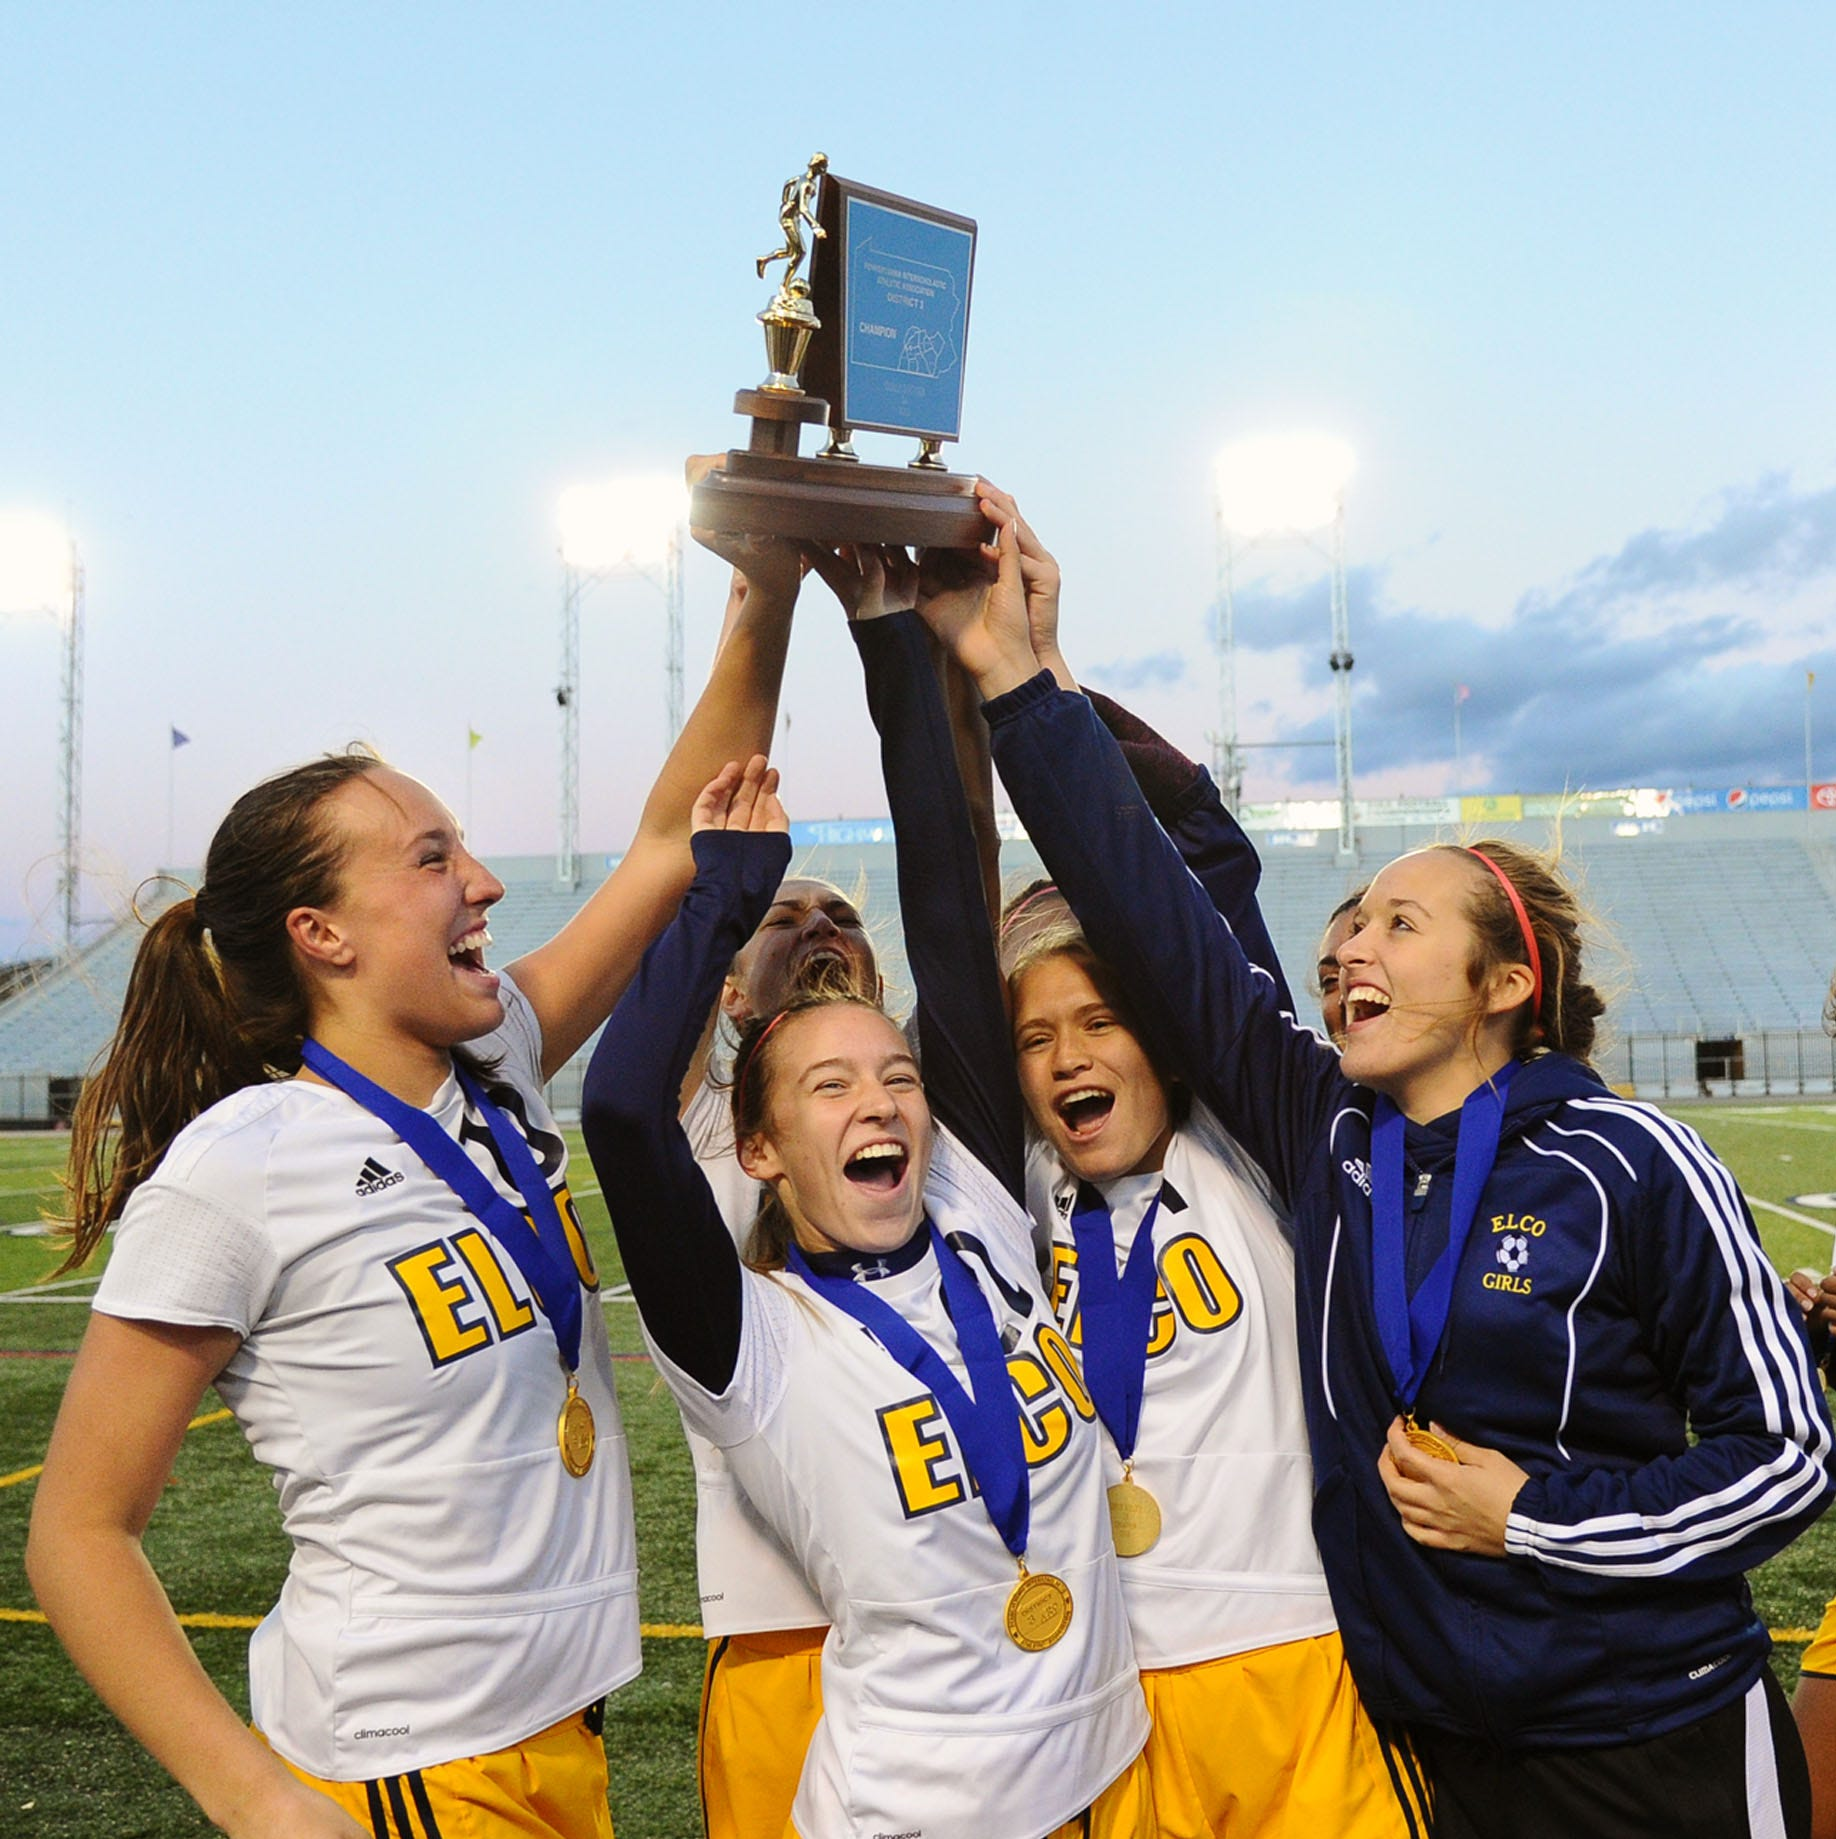 Looking back at the best of the Lebanon County fall sports season